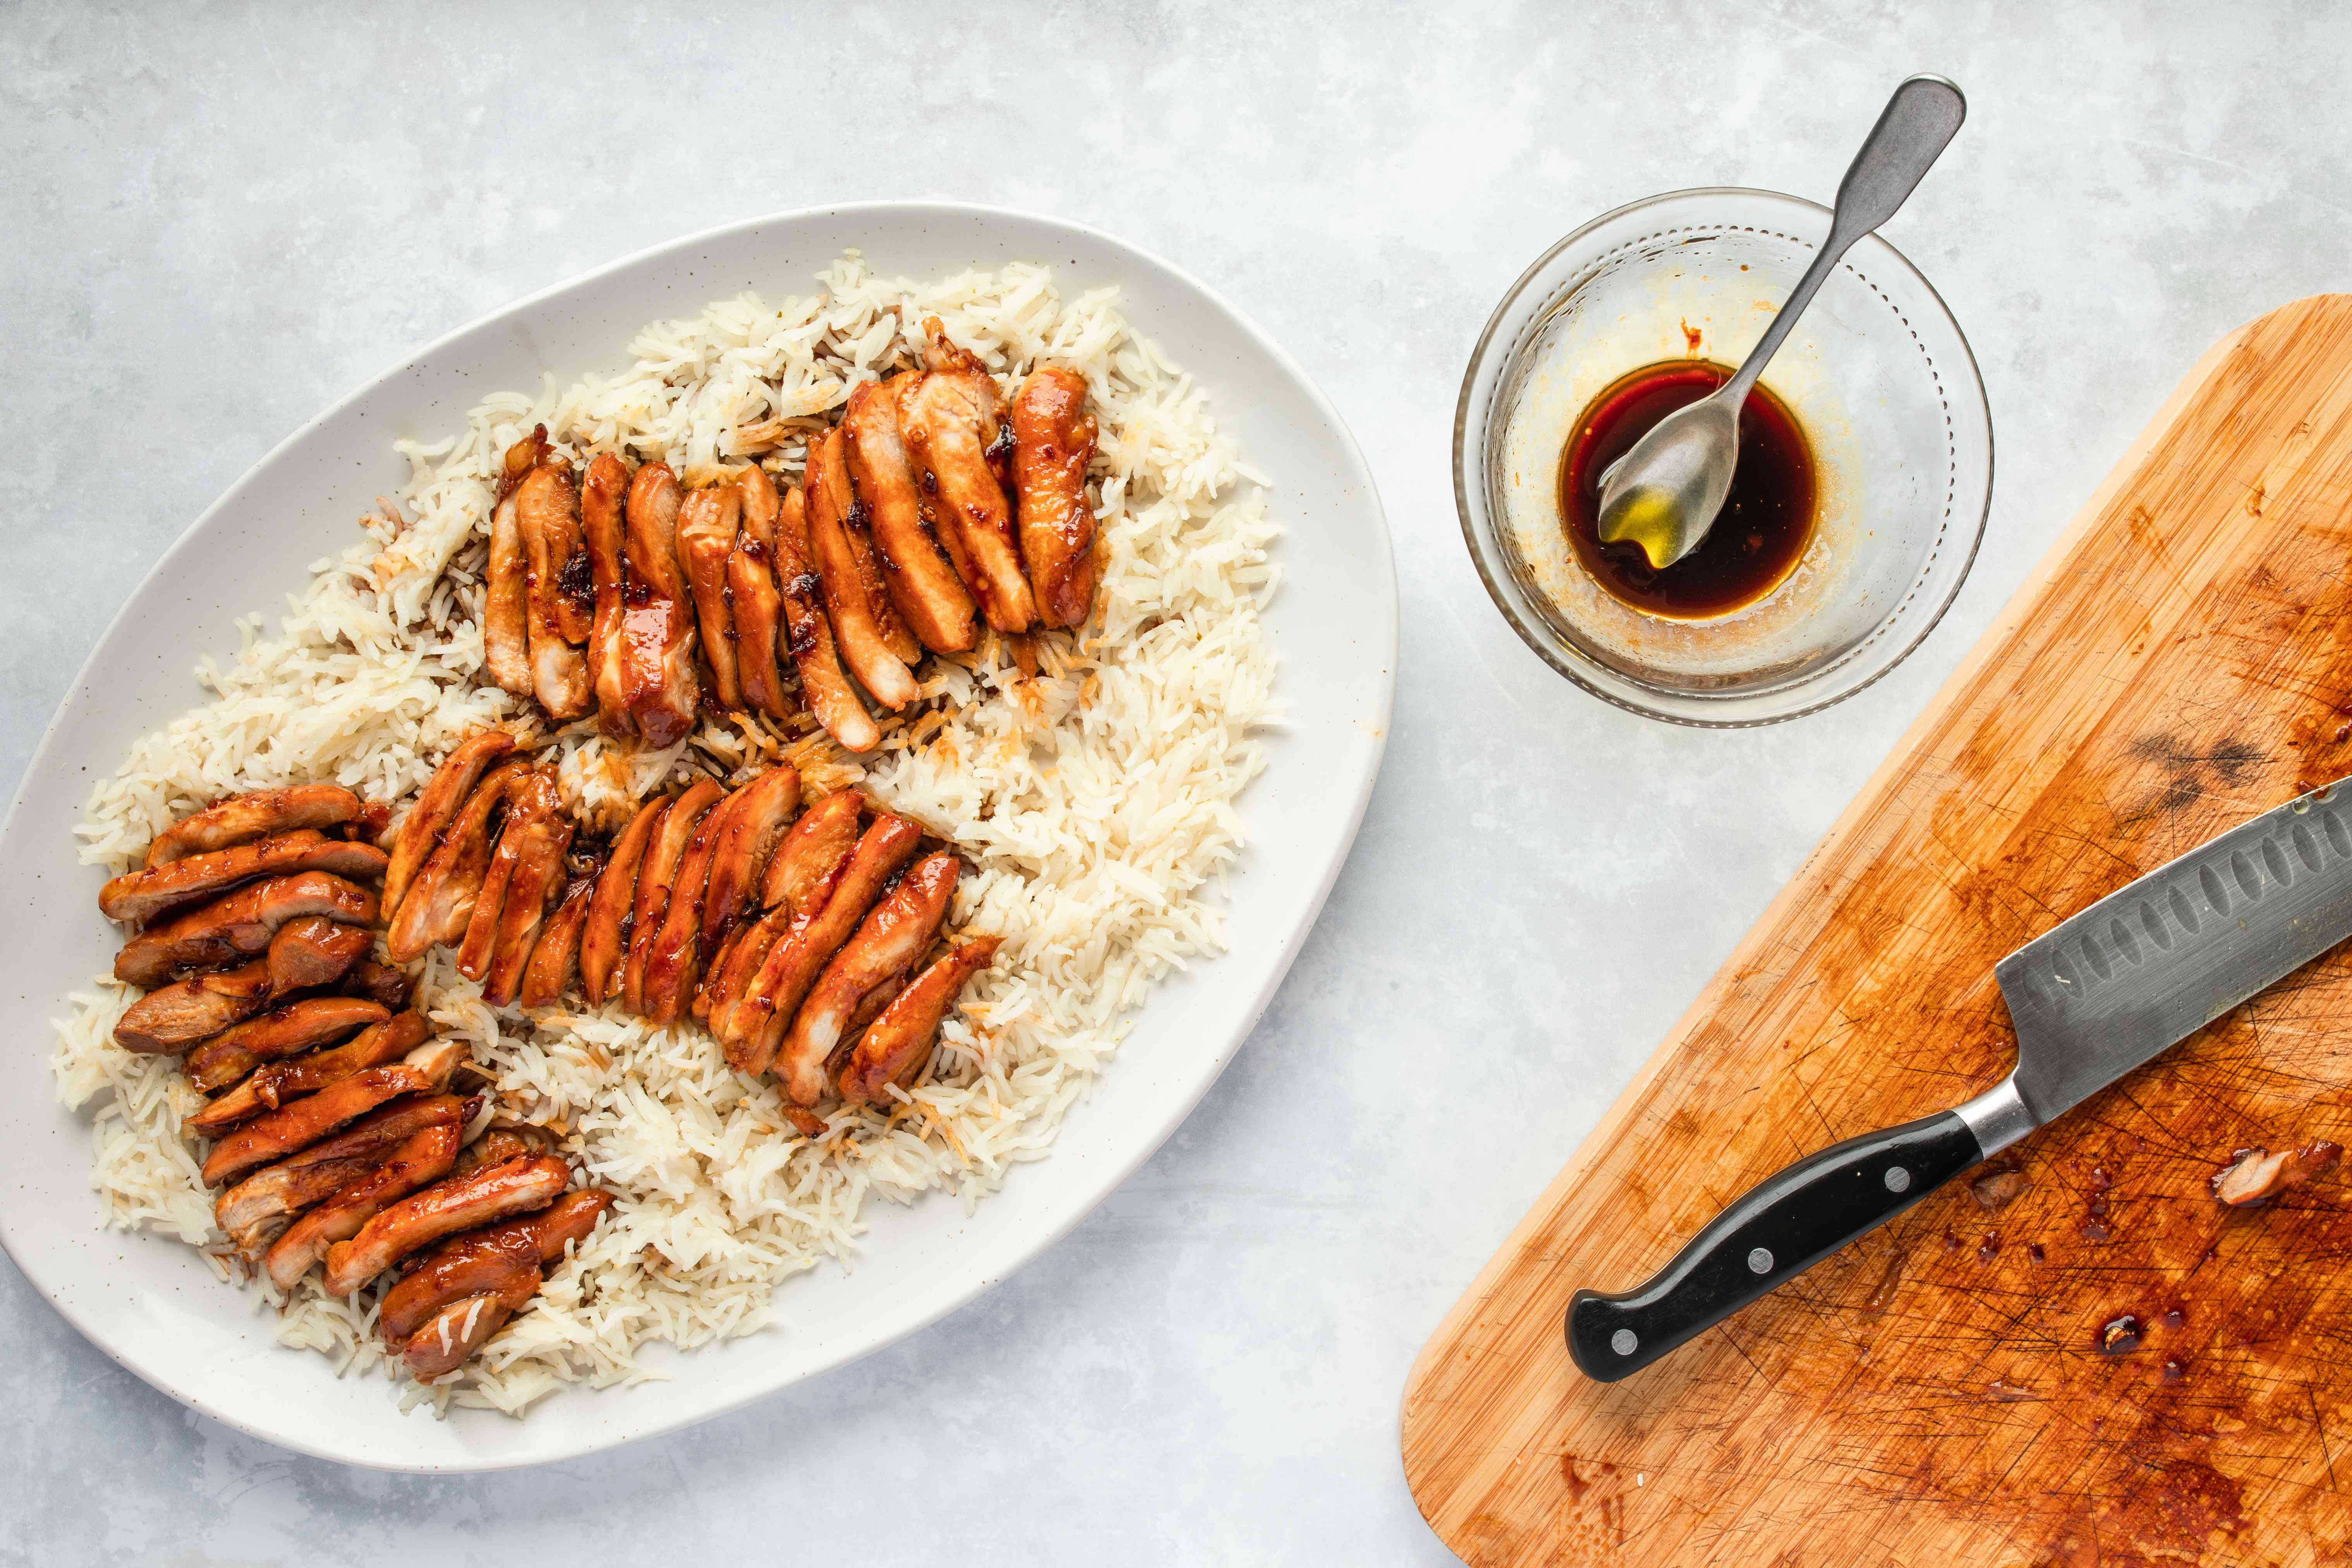 Sliced chicken served over rice with sauce